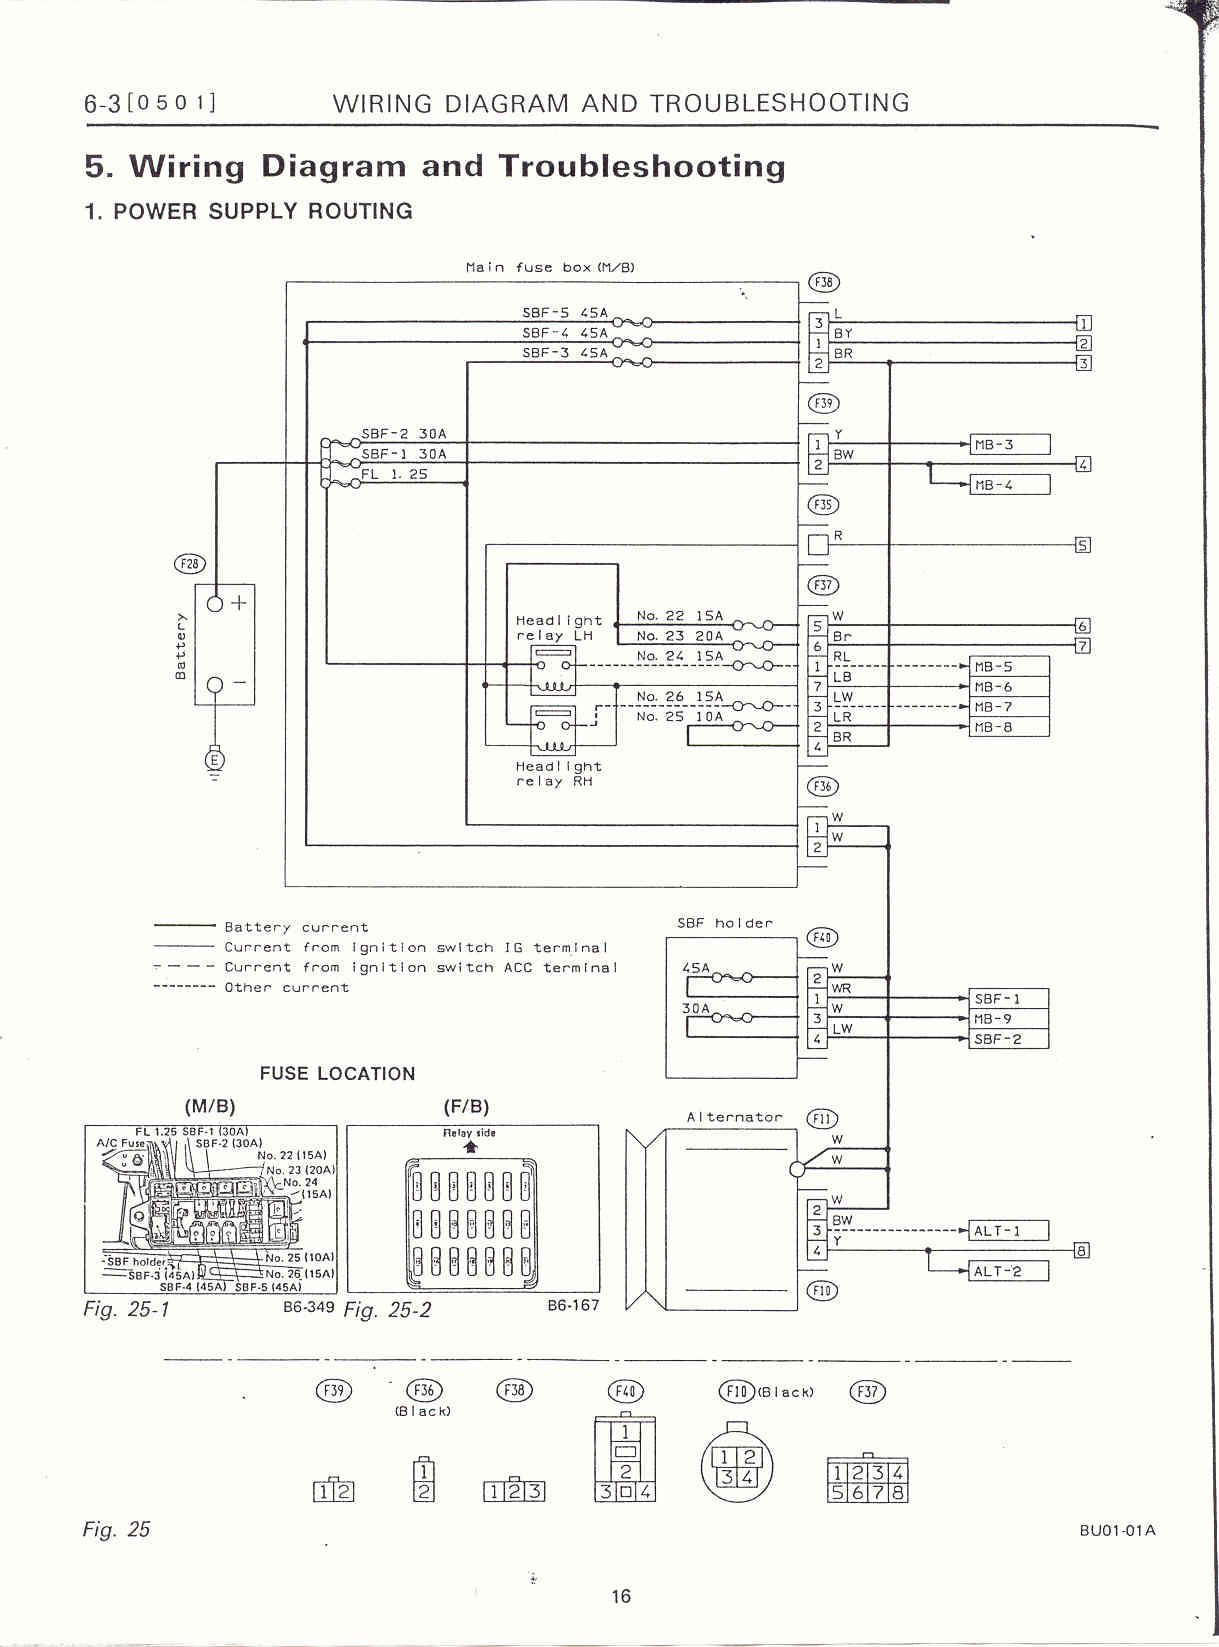 subaru wrx radio wiring diagram wiring diagrams and schematics 2008 subaru forester stereo wiring diagram diagrams and